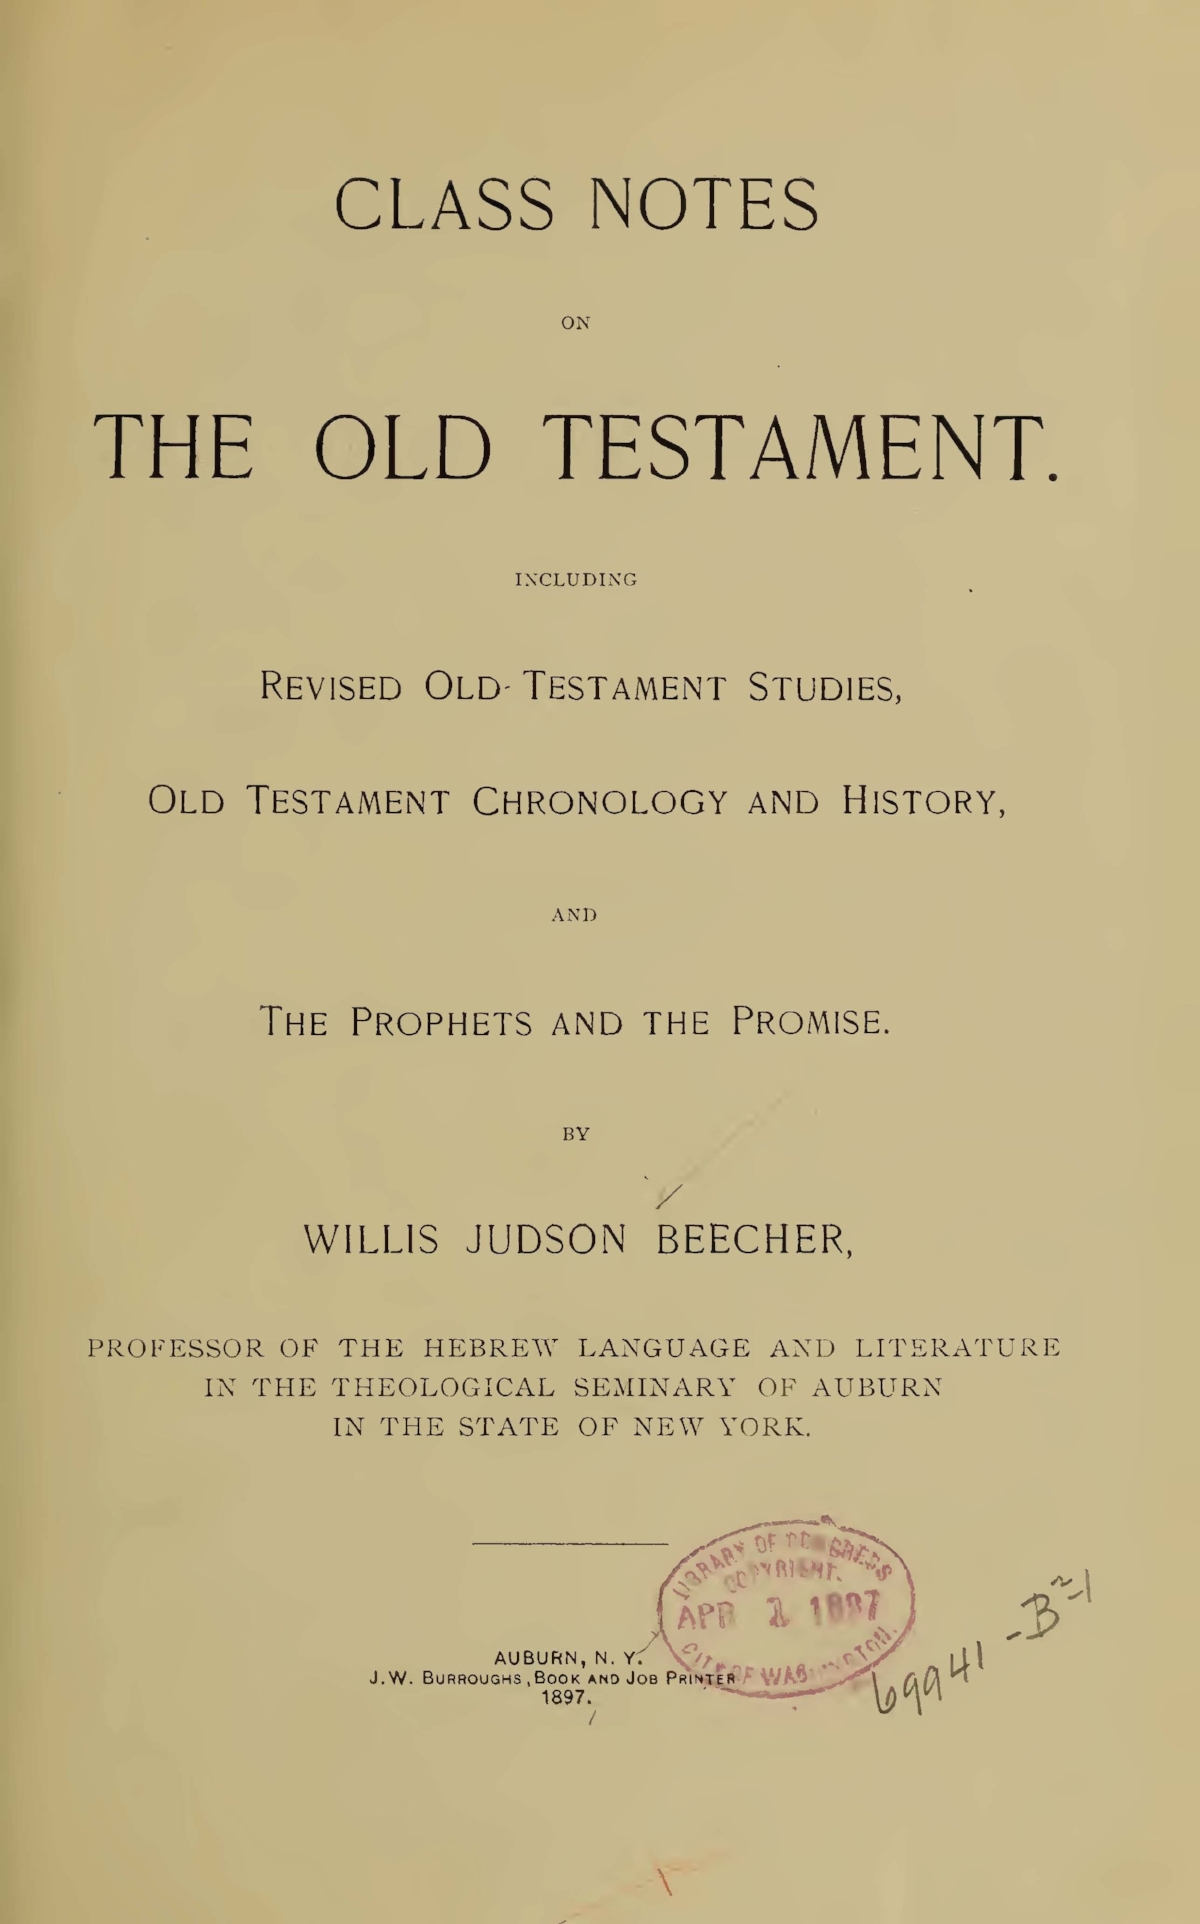 Beecher, Willis Judson, Class Notes on the Old Testament Title Page.jpg